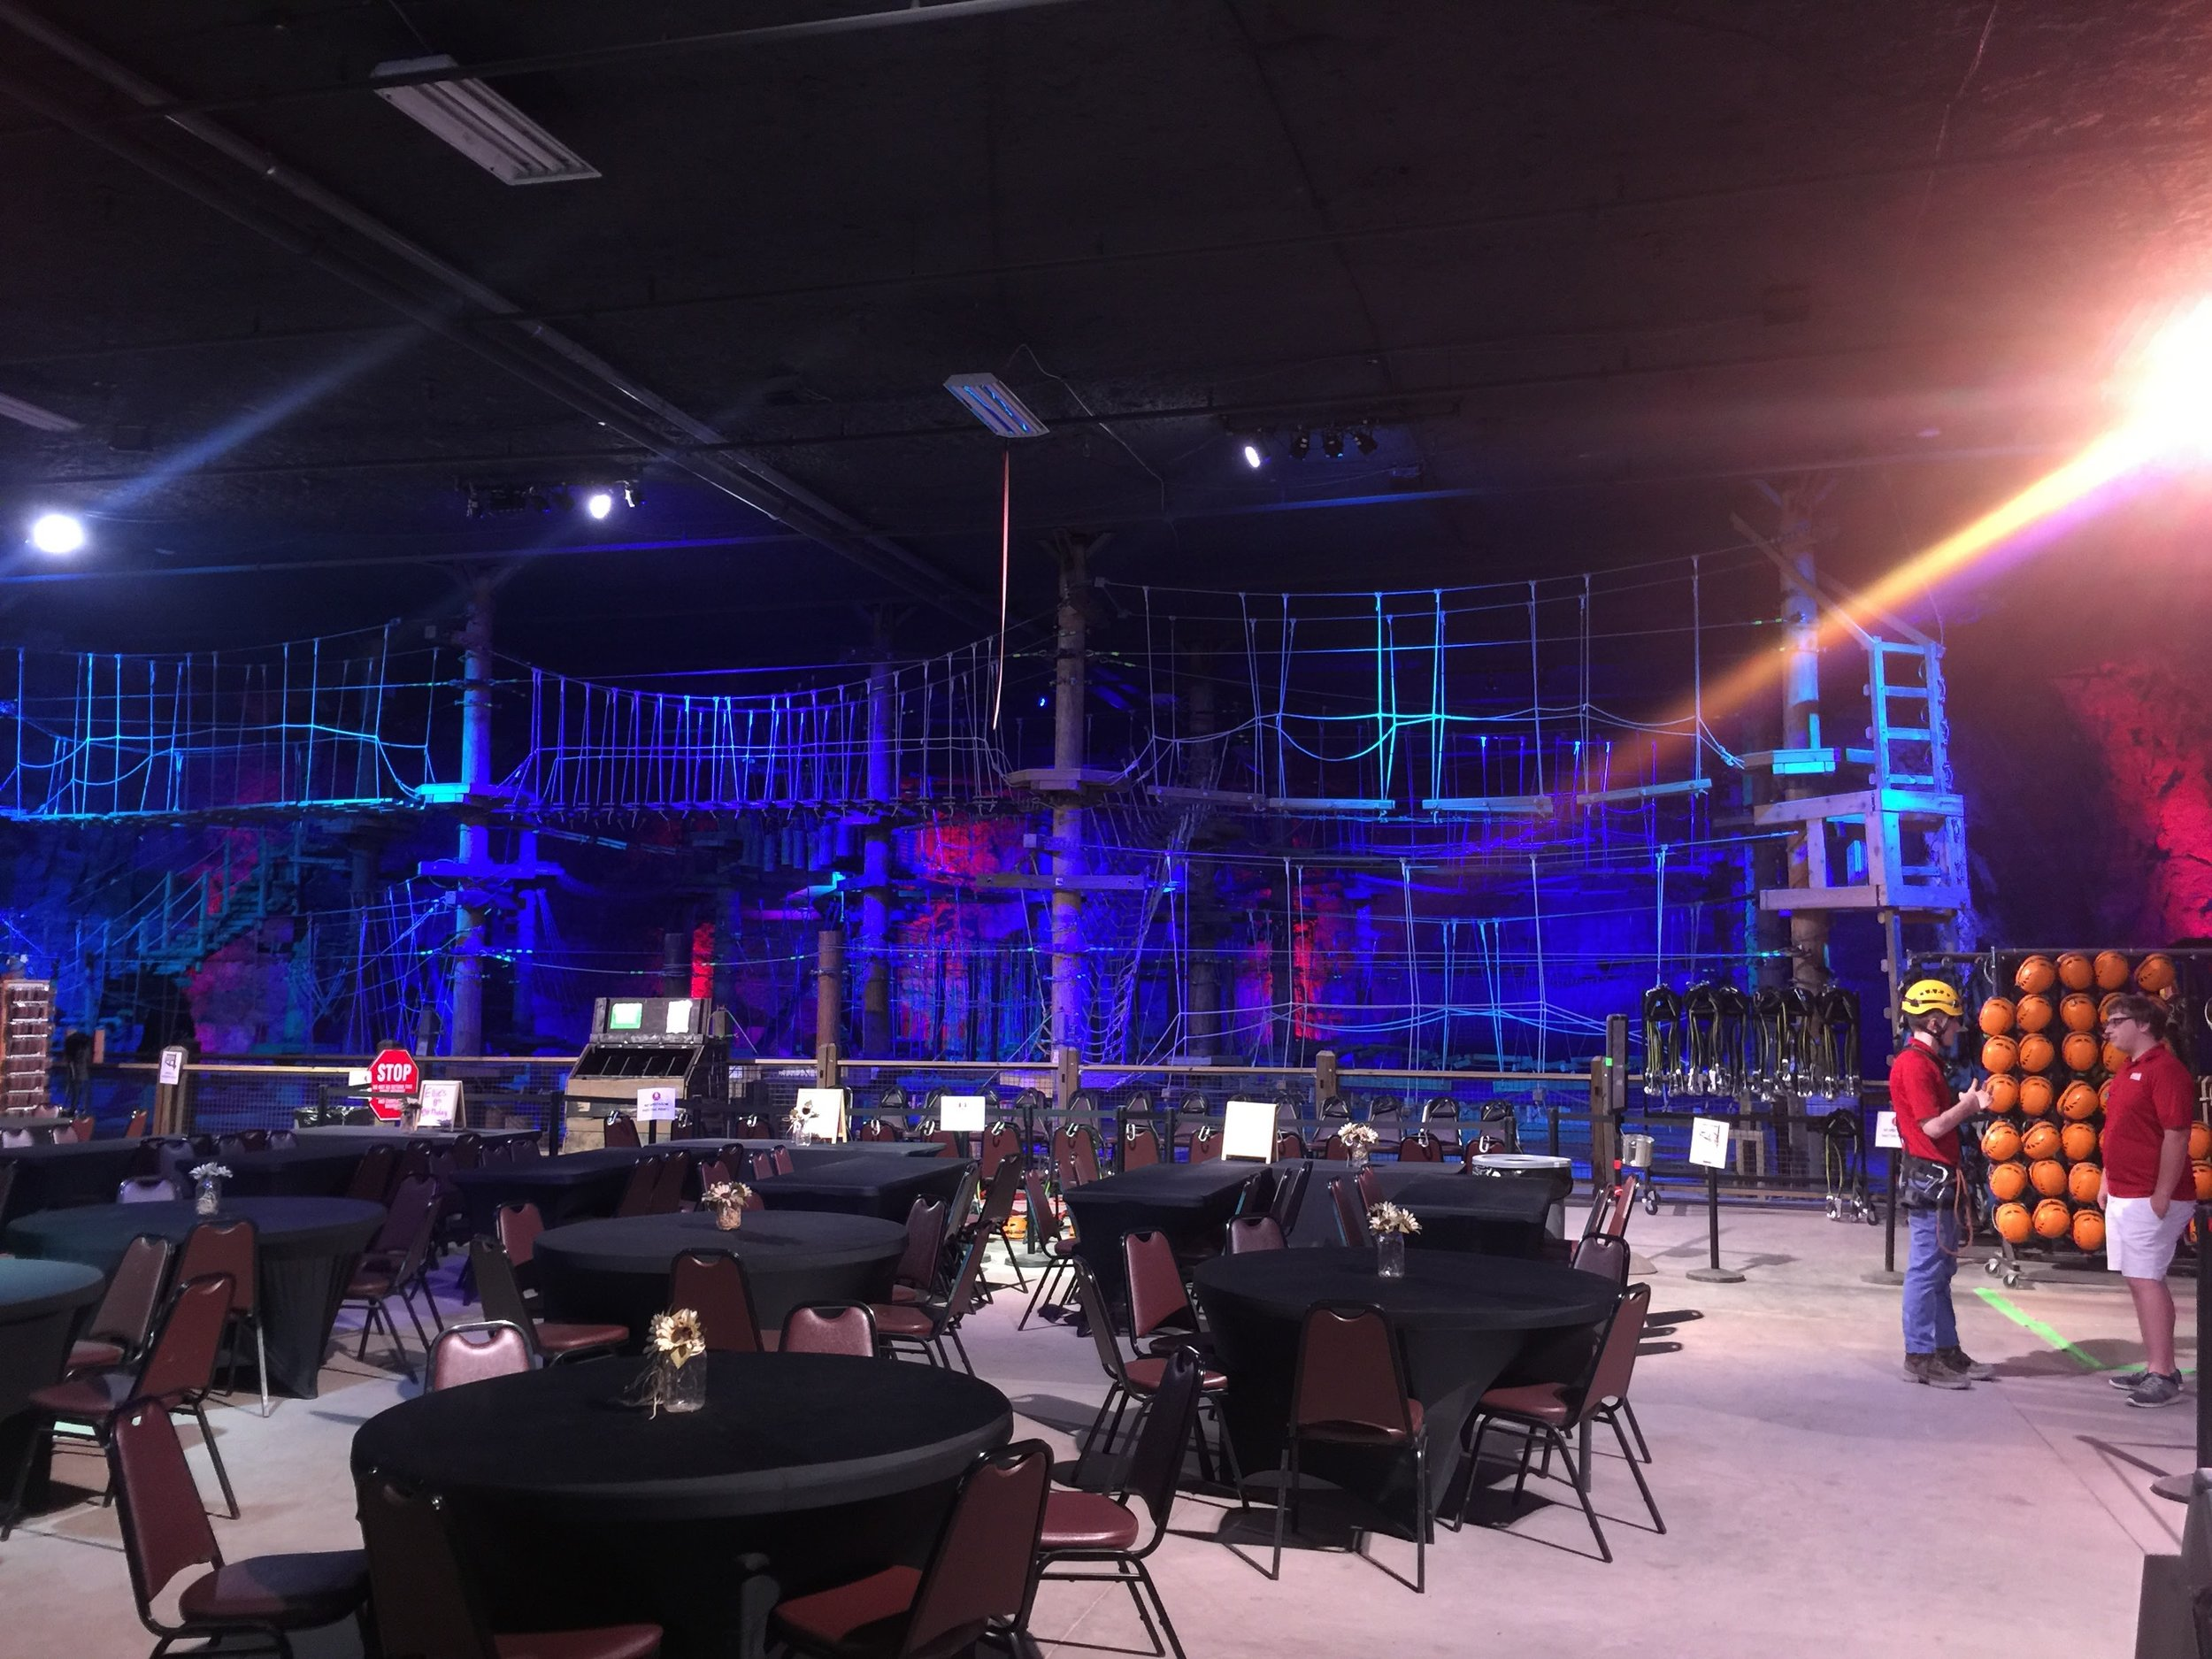 Louisville Mega Cavern Ropes Course